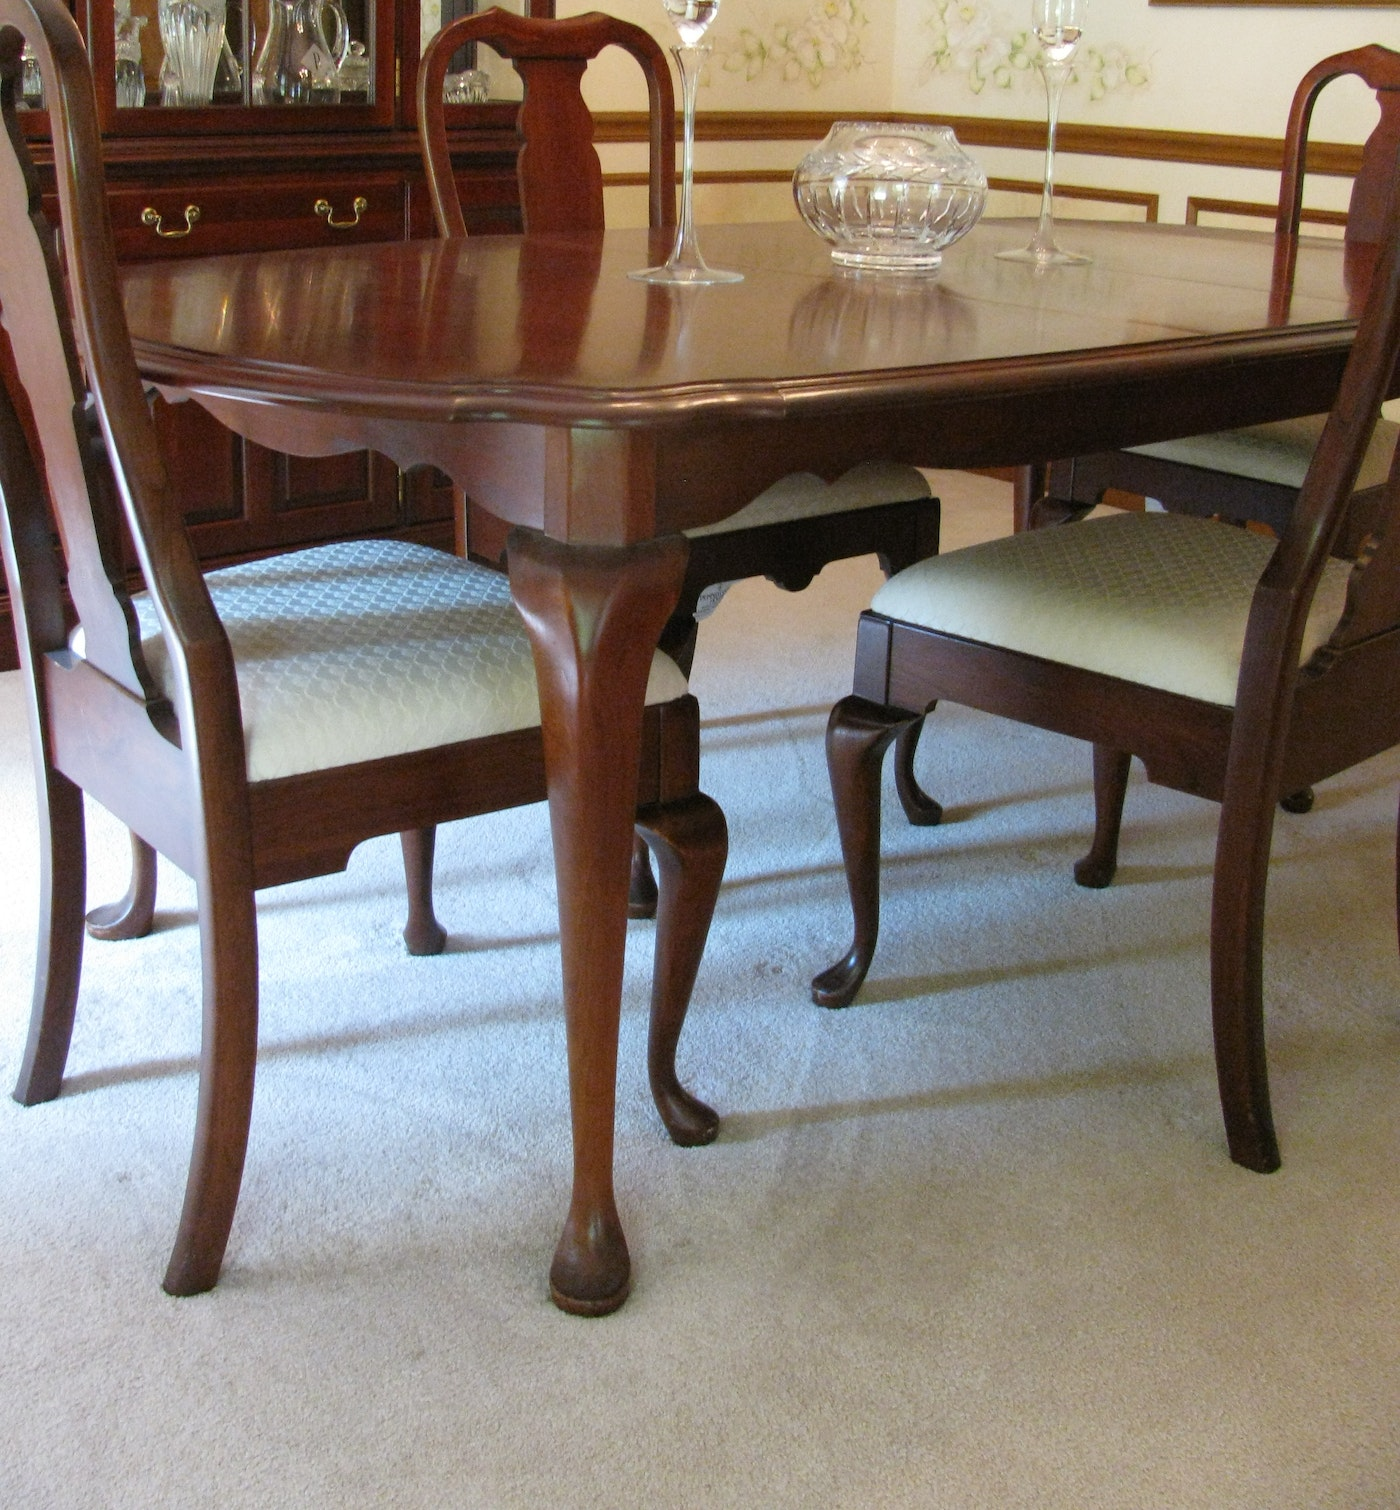 Pennsylvania House Cherry Queen Anne Dining Room Table And